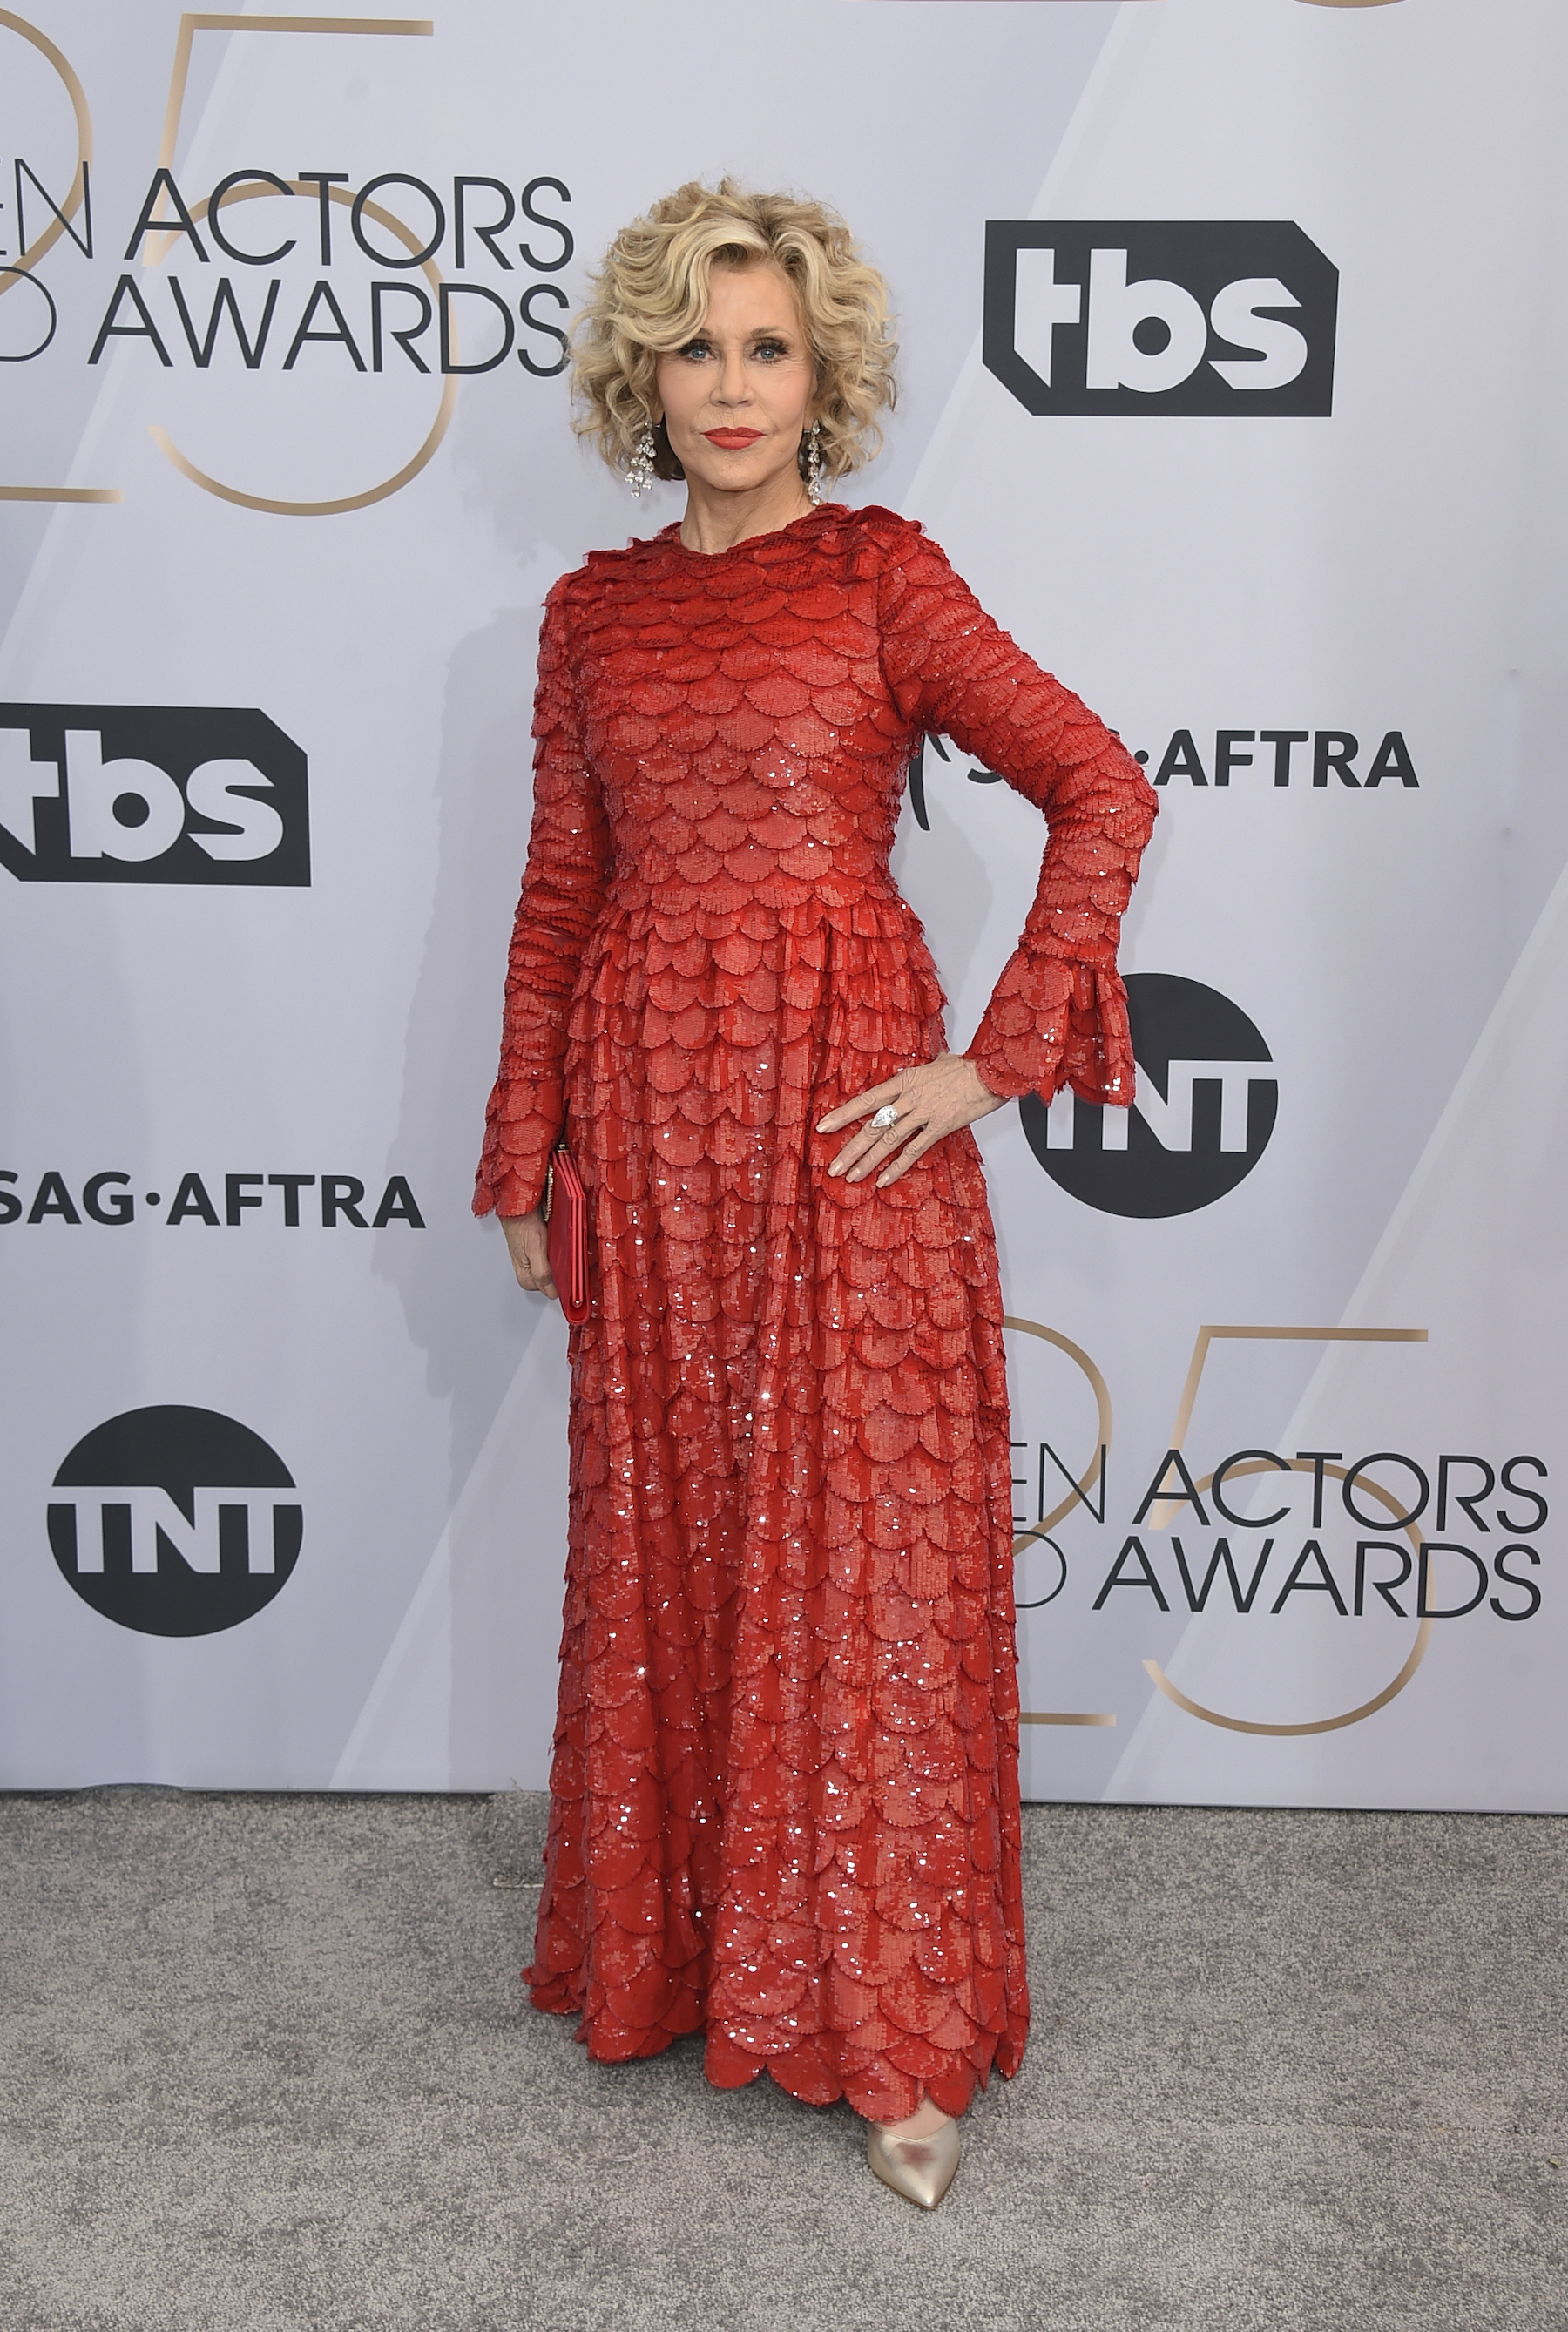 <div class='meta'><div class='origin-logo' data-origin='AP'></div><span class='caption-text' data-credit='Jordan Strauss/Invision/AP'>Jane Fonda arrives at the 25th annual Screen Actors Guild Awards at the Shrine Auditorium & Expo Hall on Sunday, Jan. 27, 2019, in Los Angeles.</span></div>